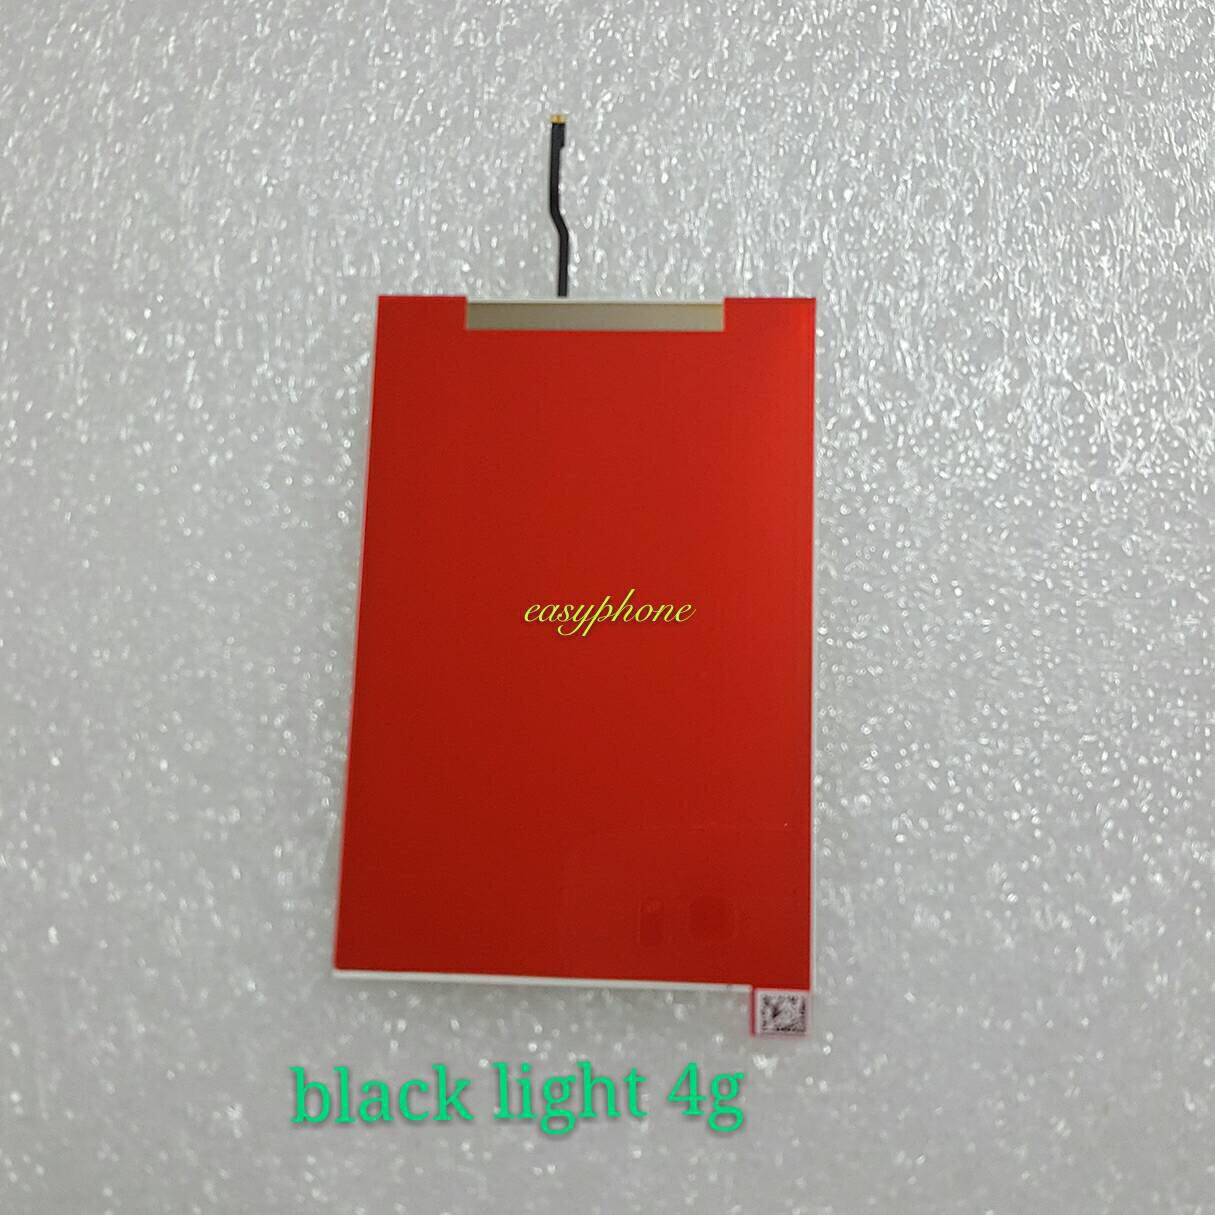 แผงไฟ Back Light iPhone 4g